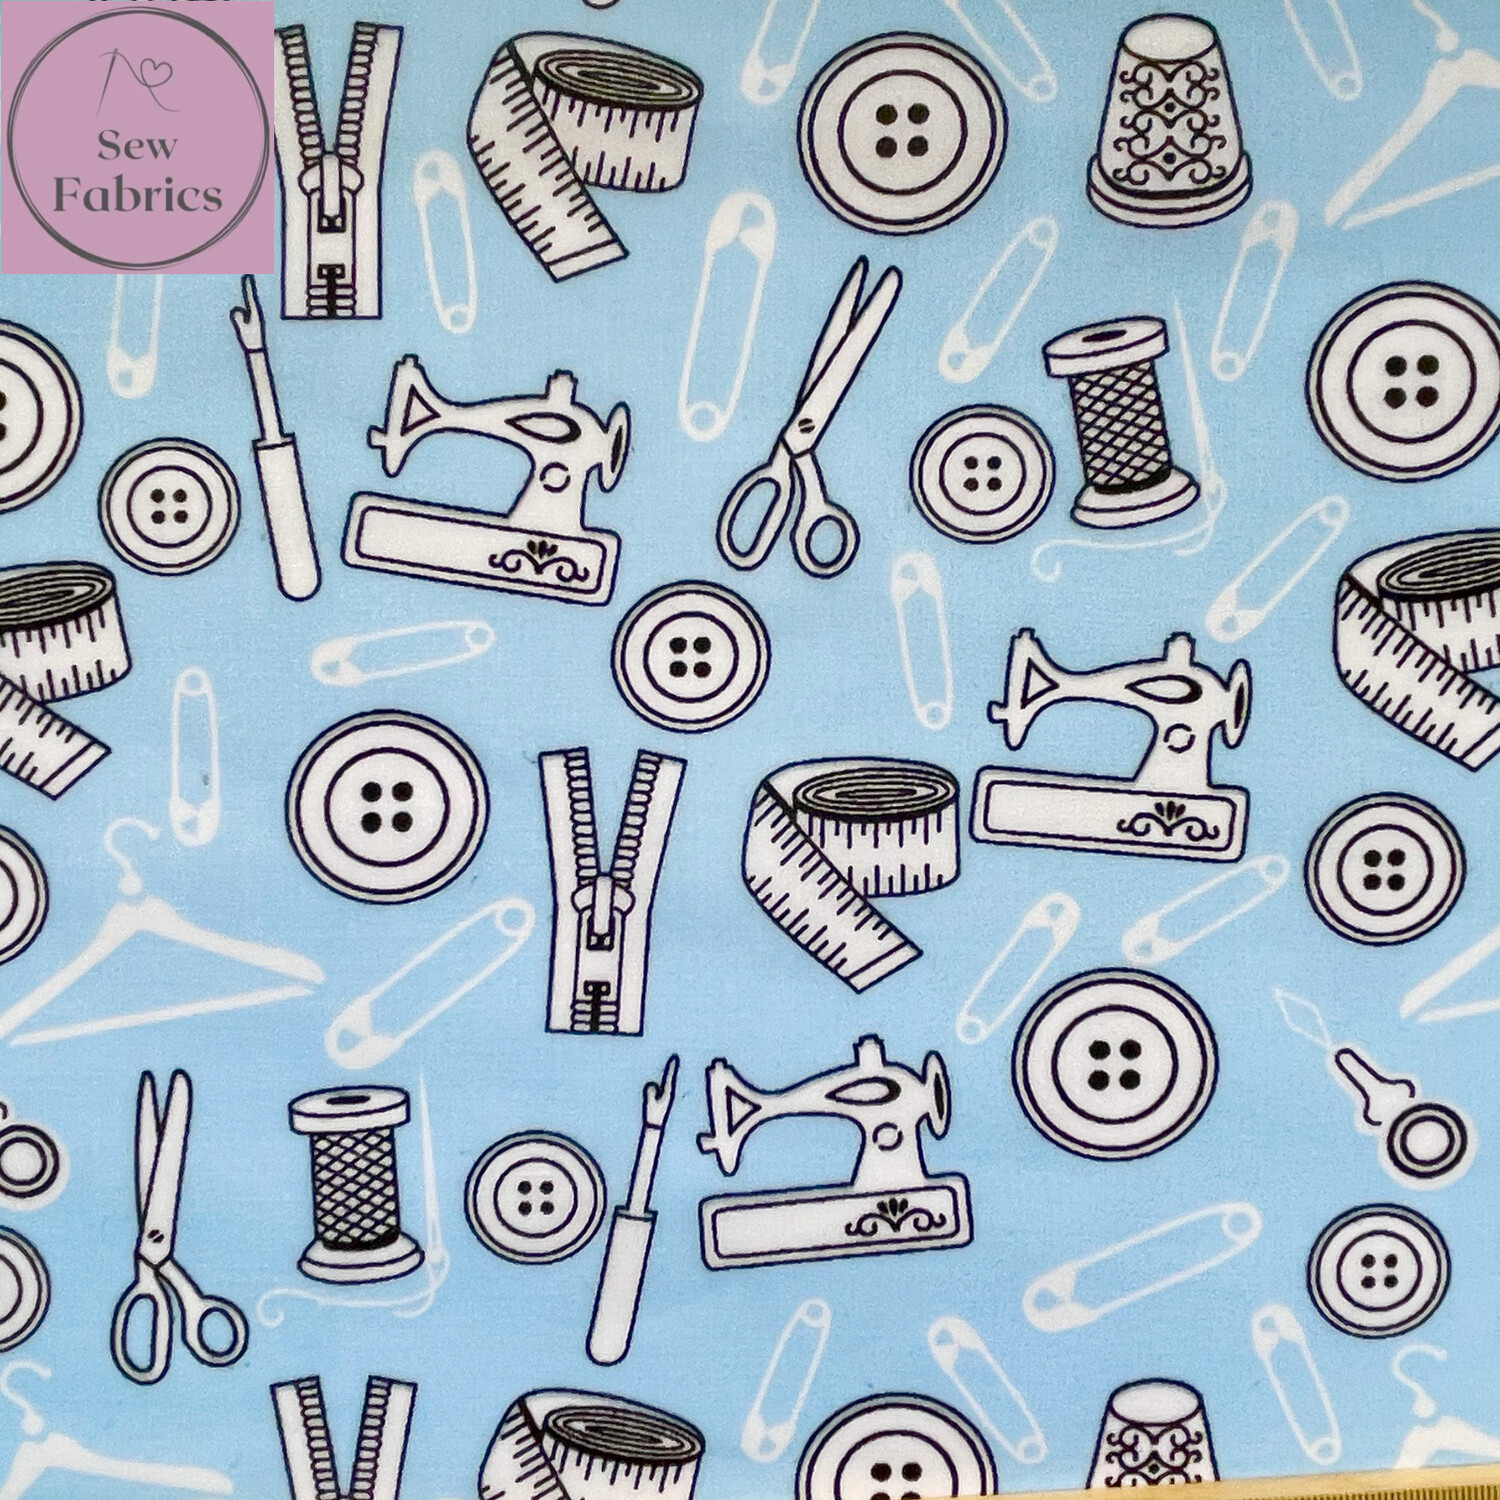 Sky Blue Sewing Print Polycotton Fabric, Fun Novelty Craft Material